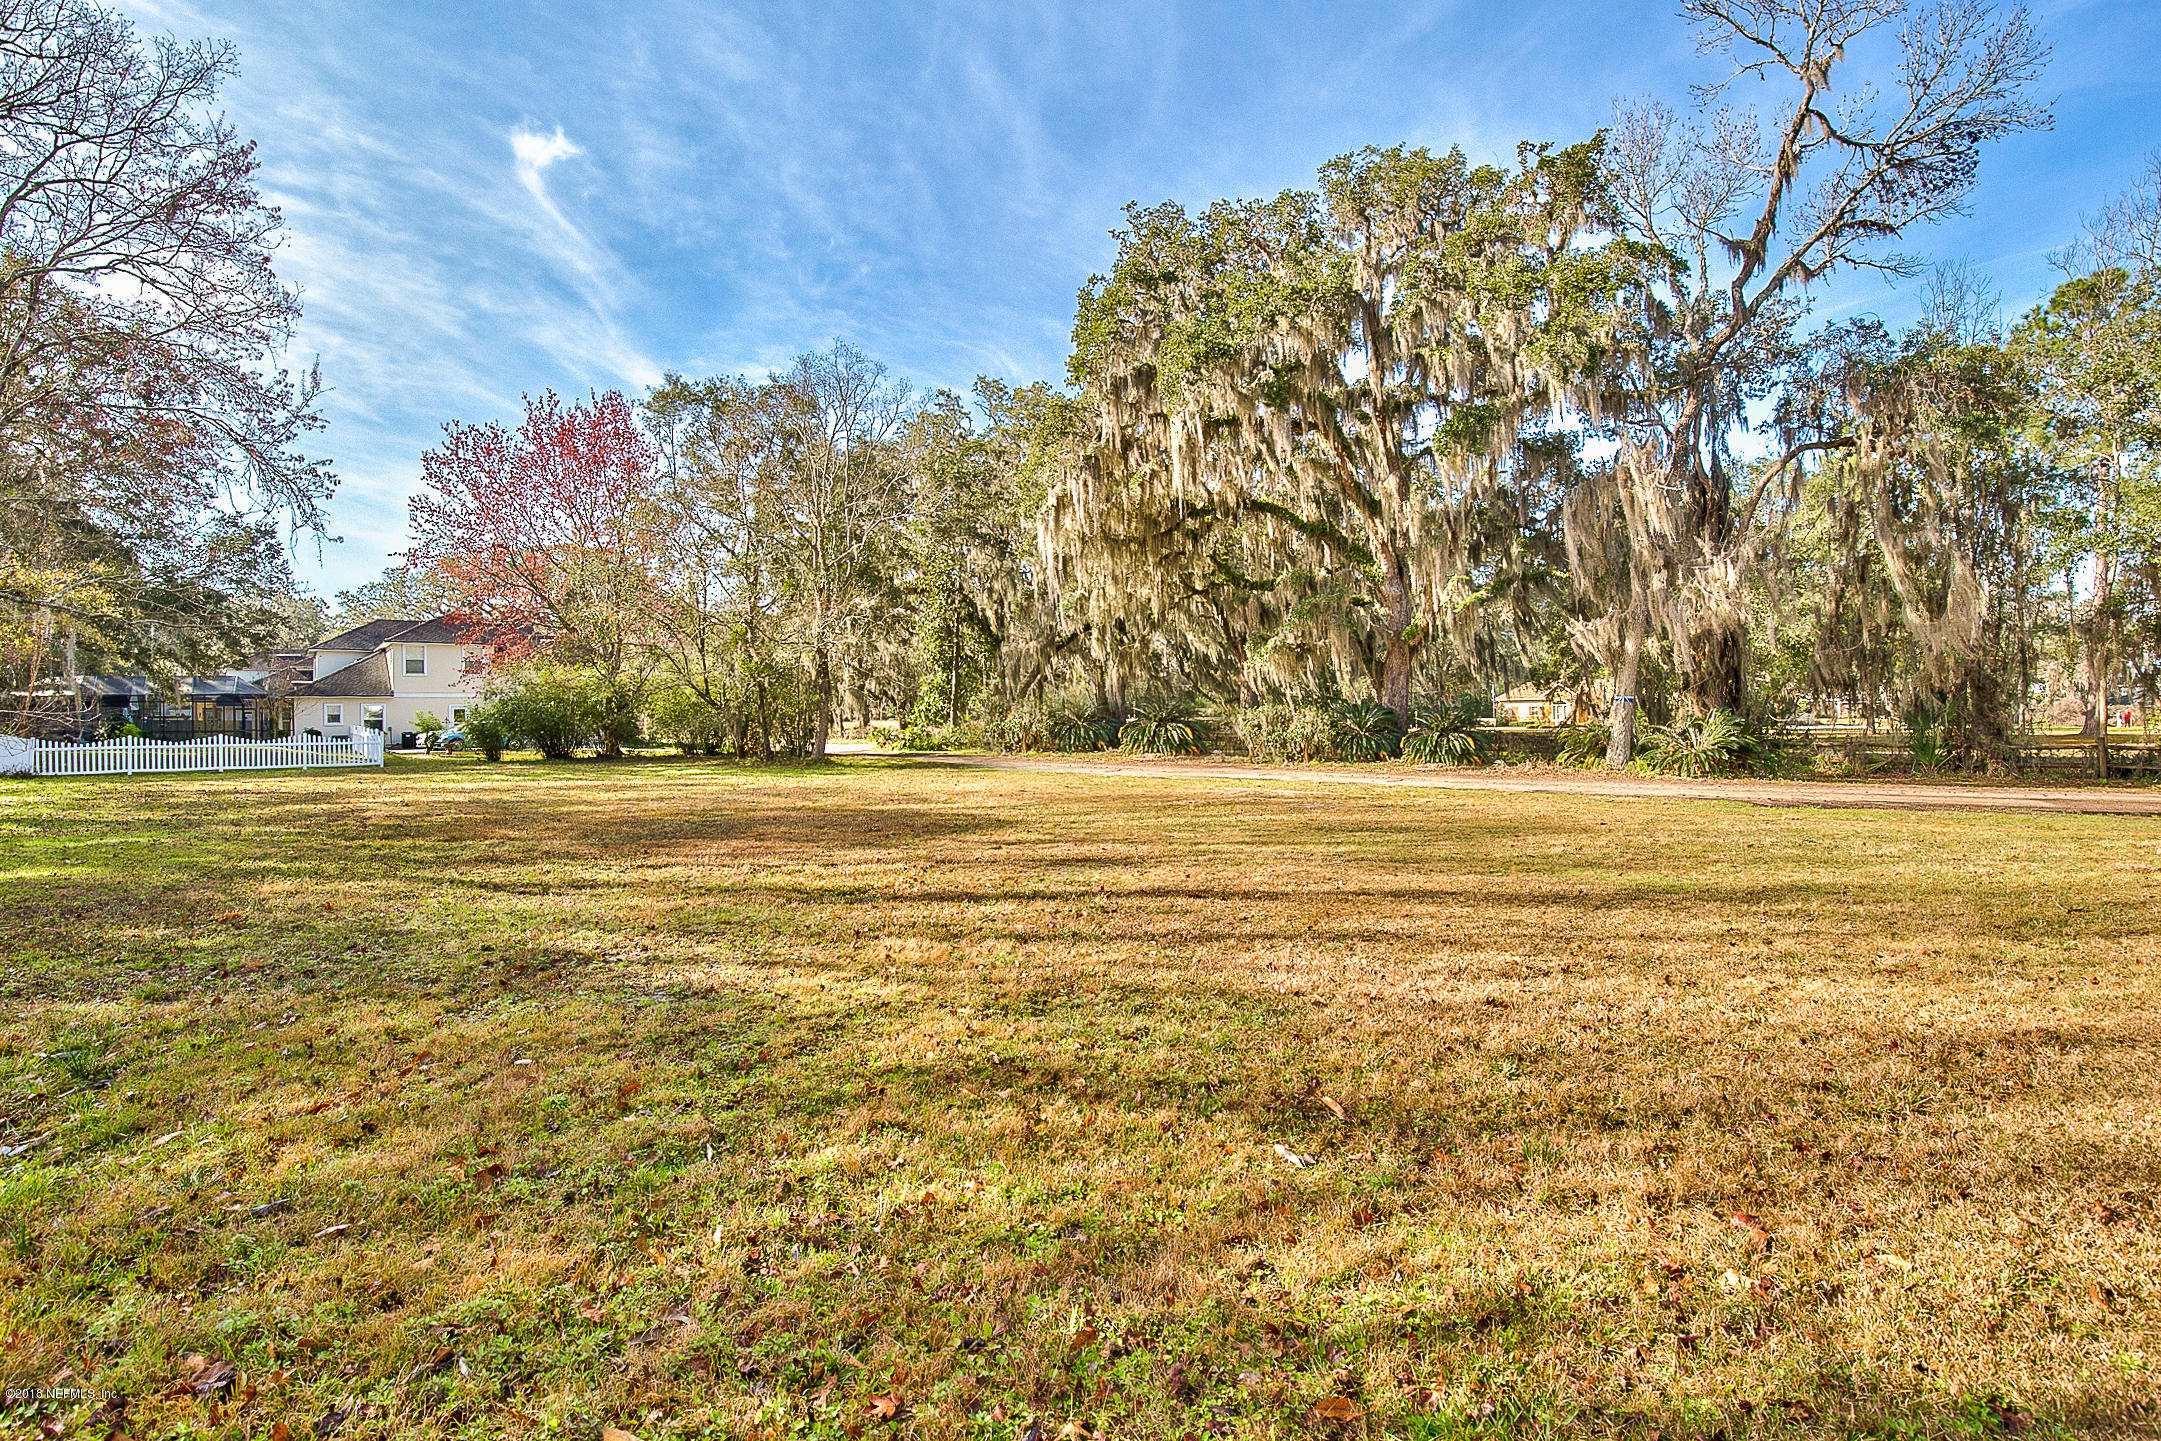 0 RIVER EDGE, FRUIT COVE, FLORIDA 32259, ,Vacant land,For sale,RIVER EDGE,920303